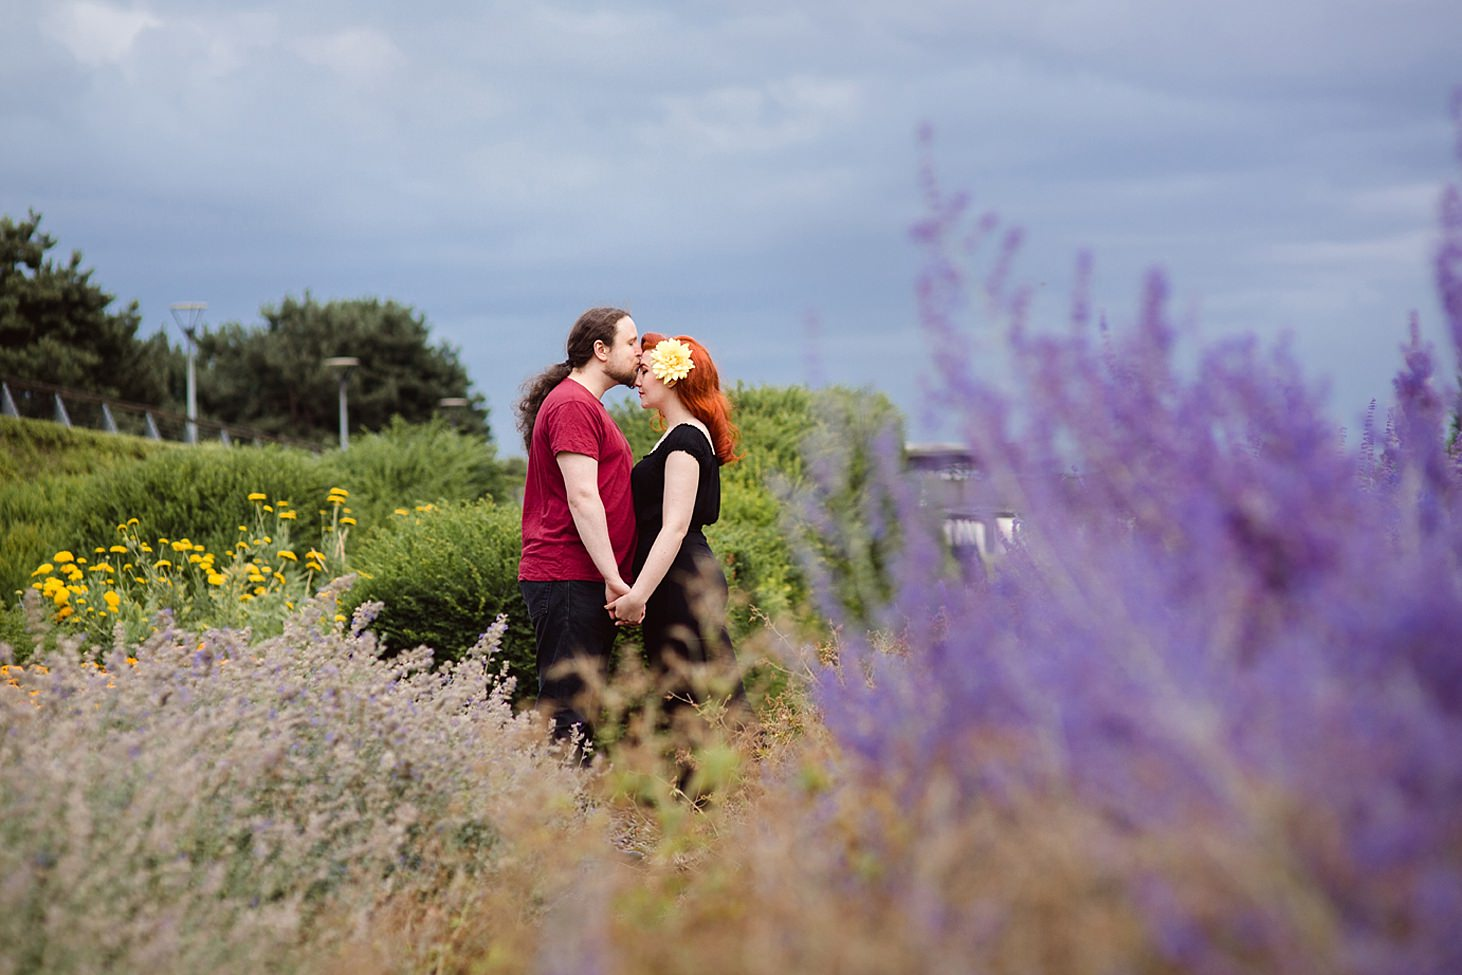 Thames barrier park engagement shoot